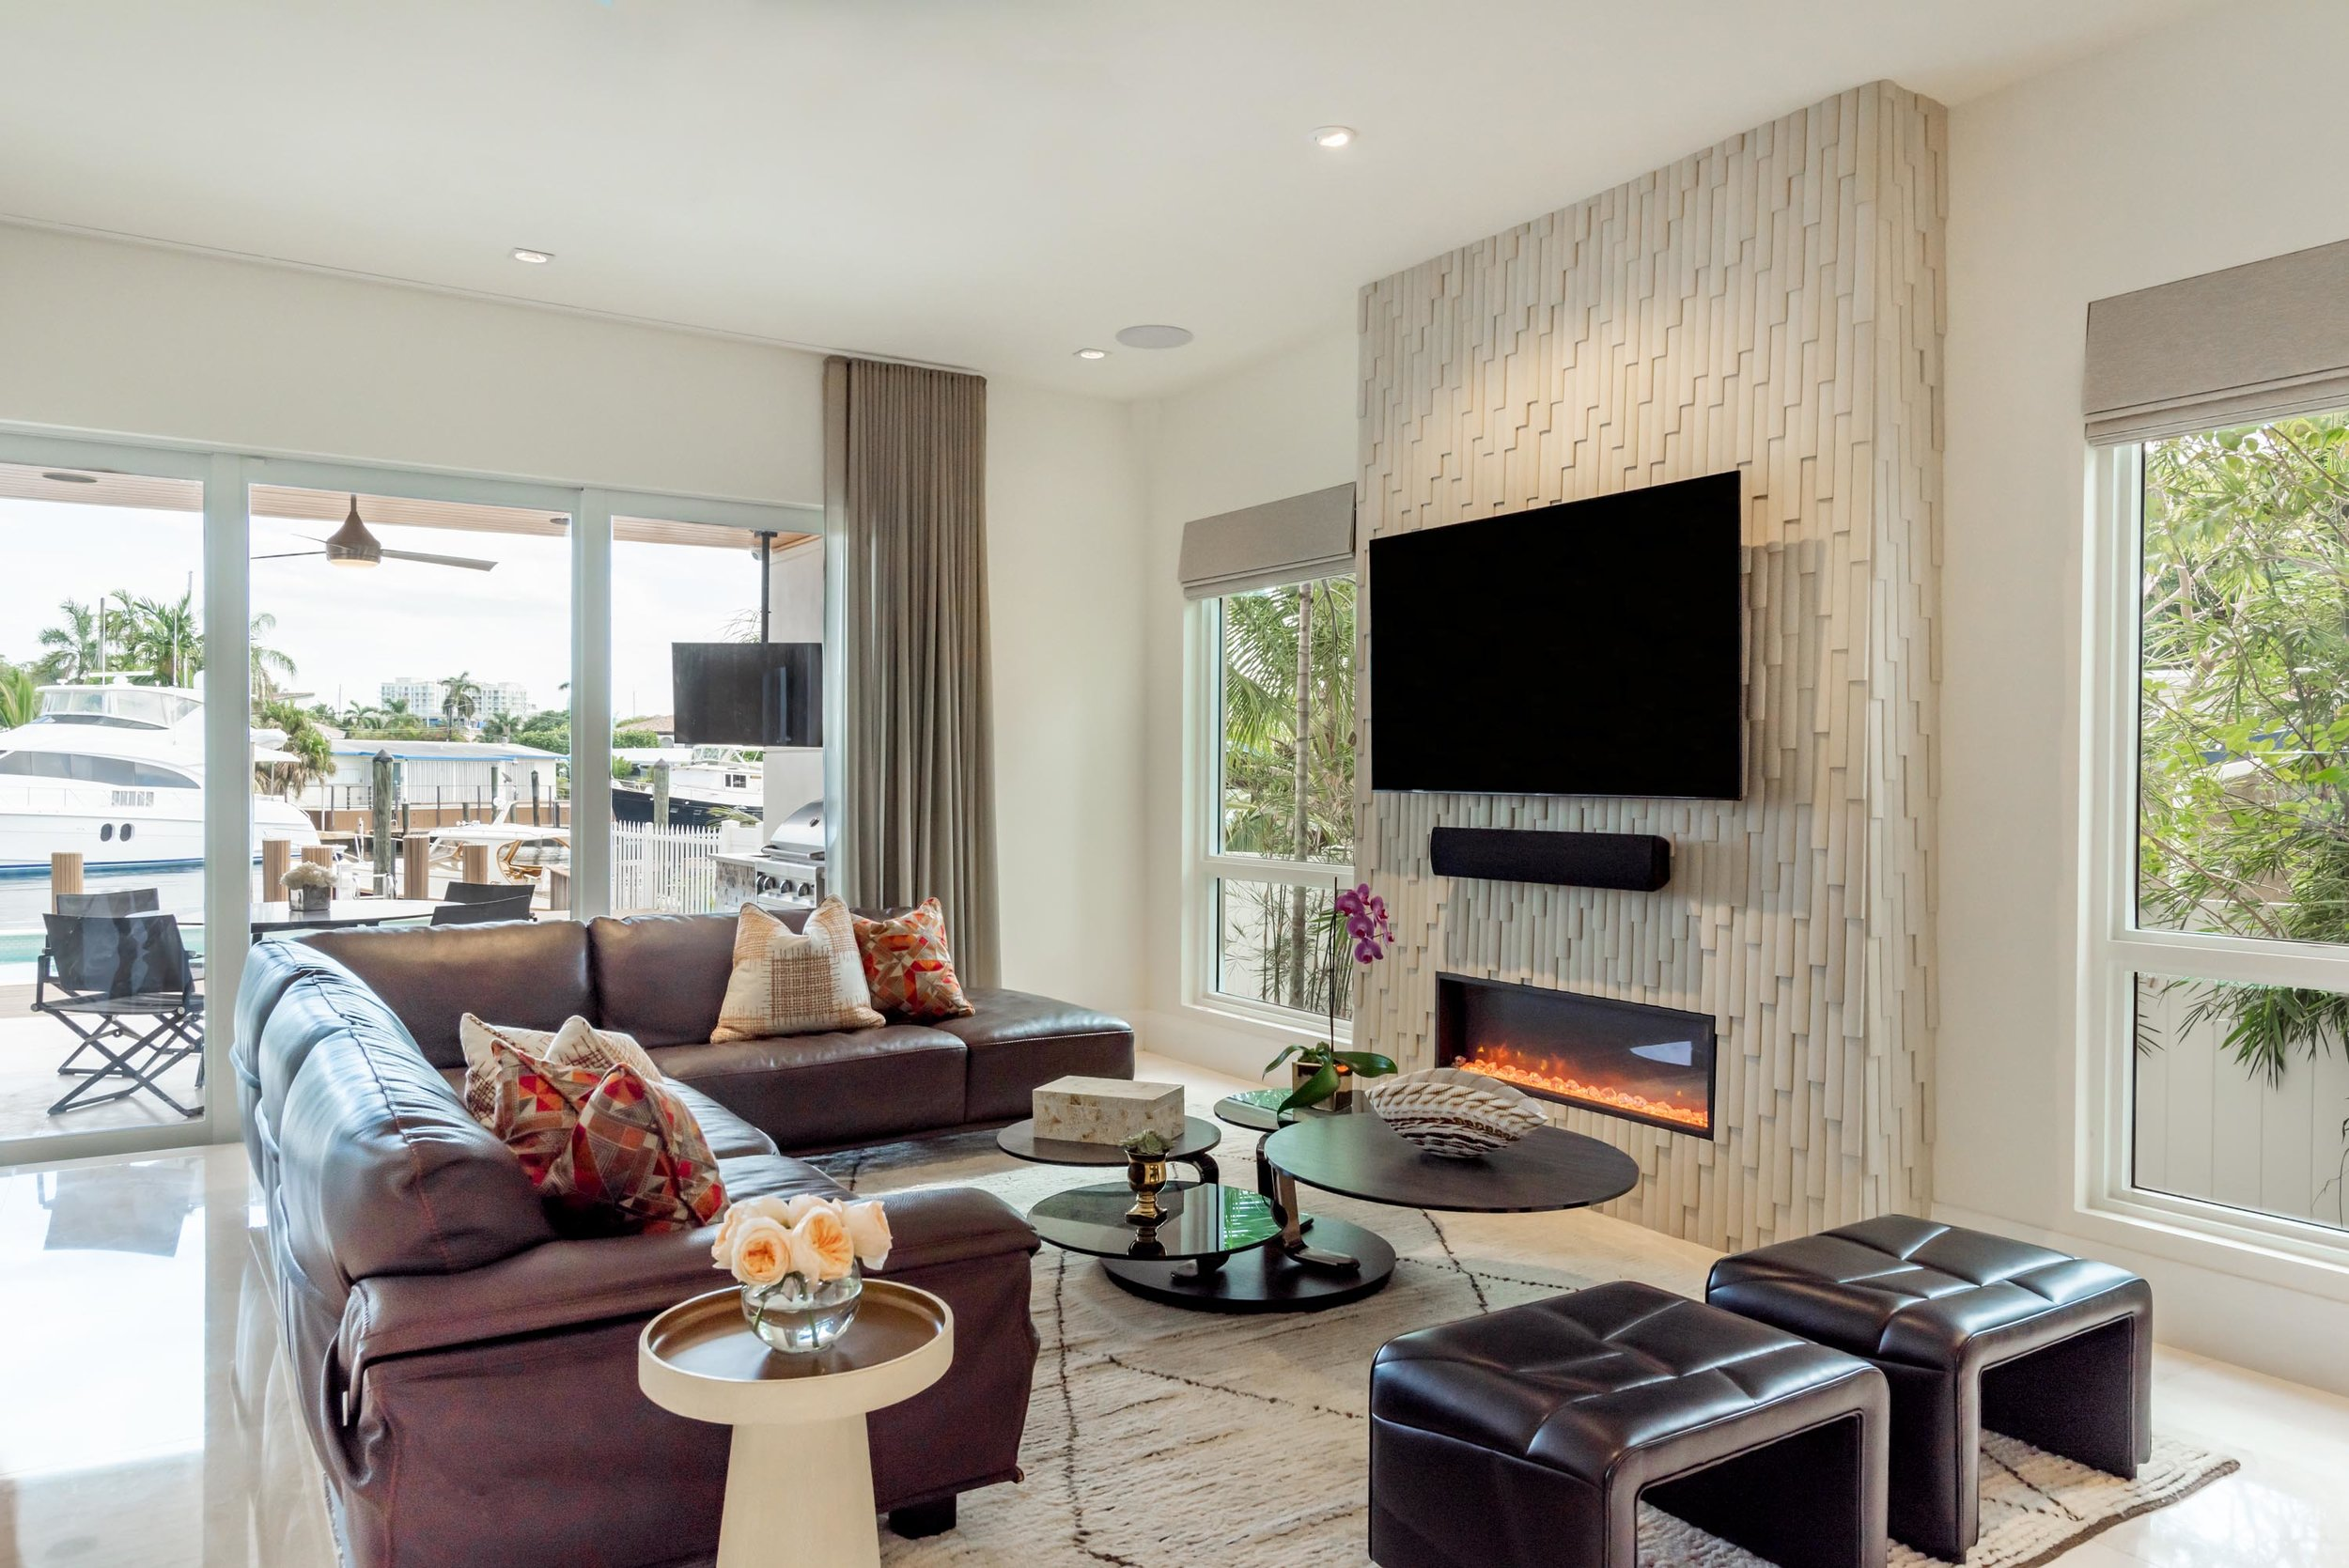 Living room with coastal view, sofa, round tables, chairs, fireplace, smart tv on wall and a custom wall